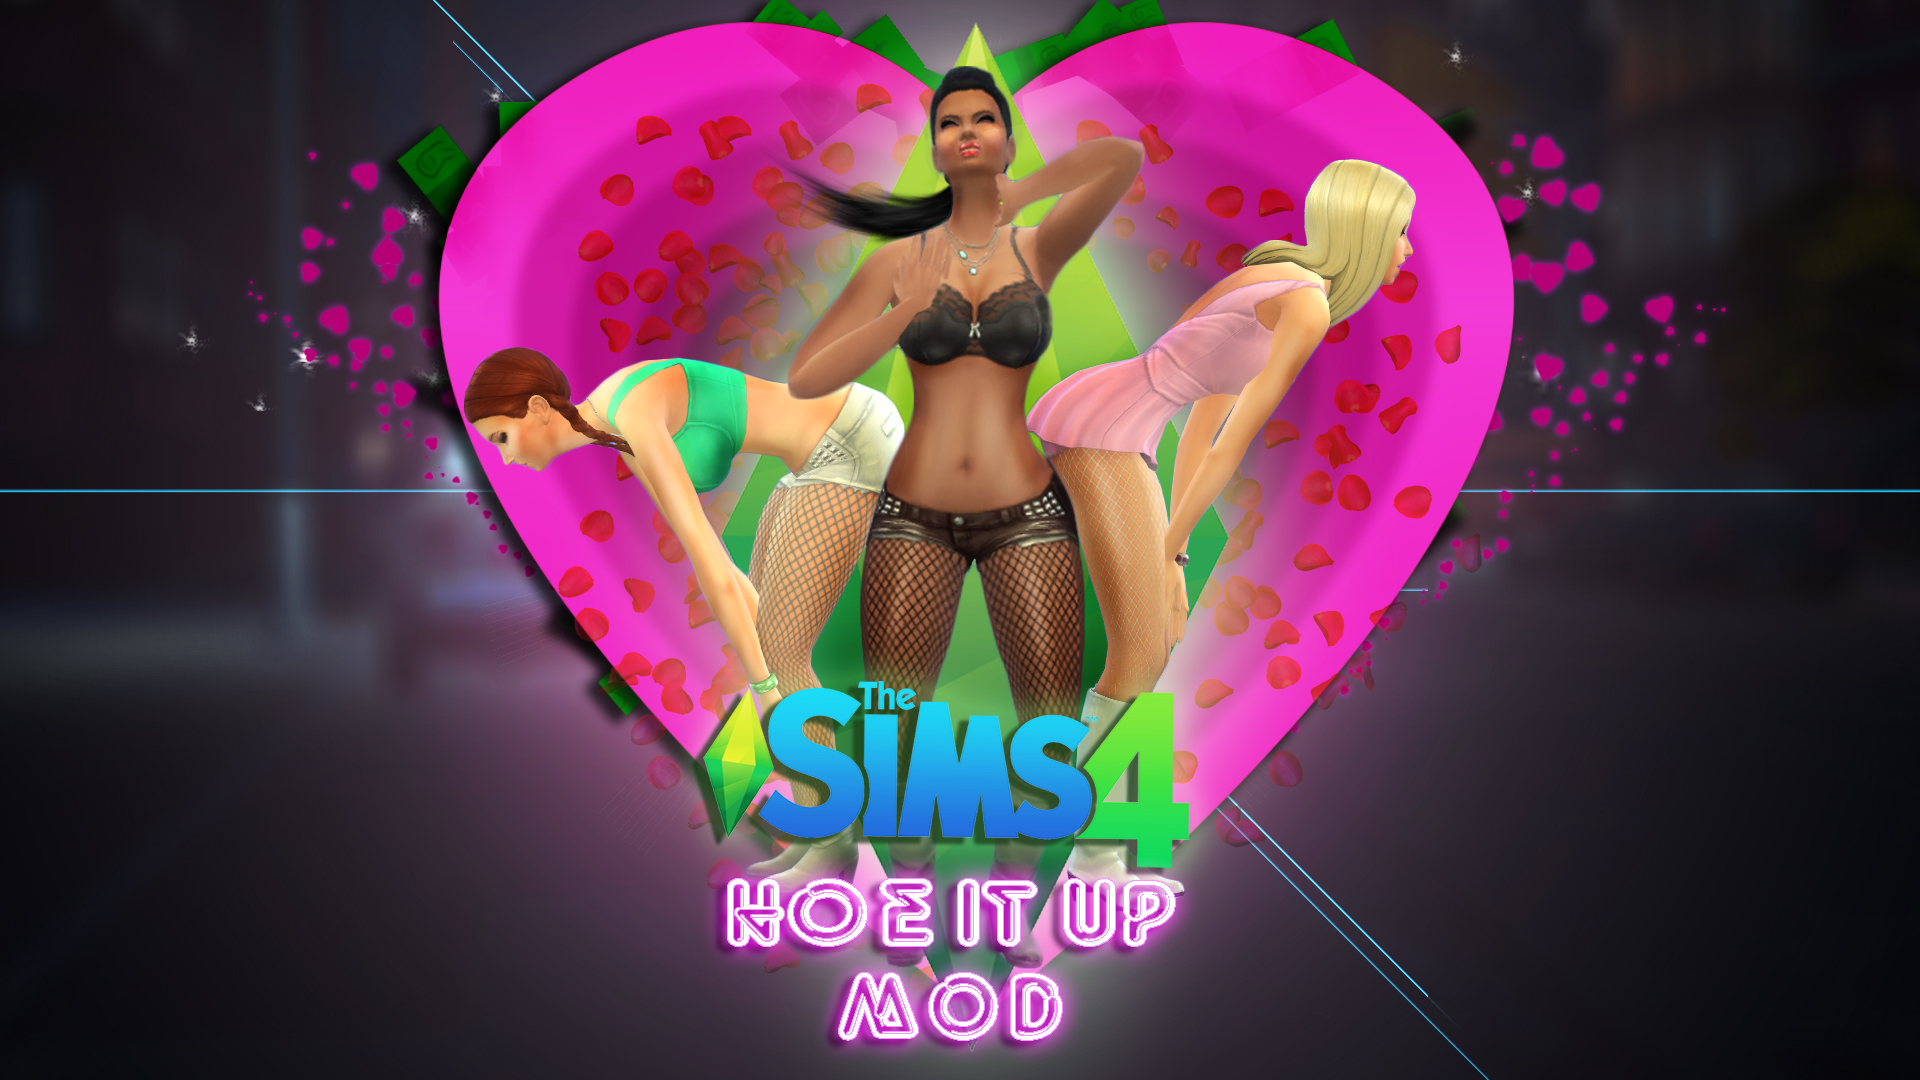 sims 4 hoe it up download free